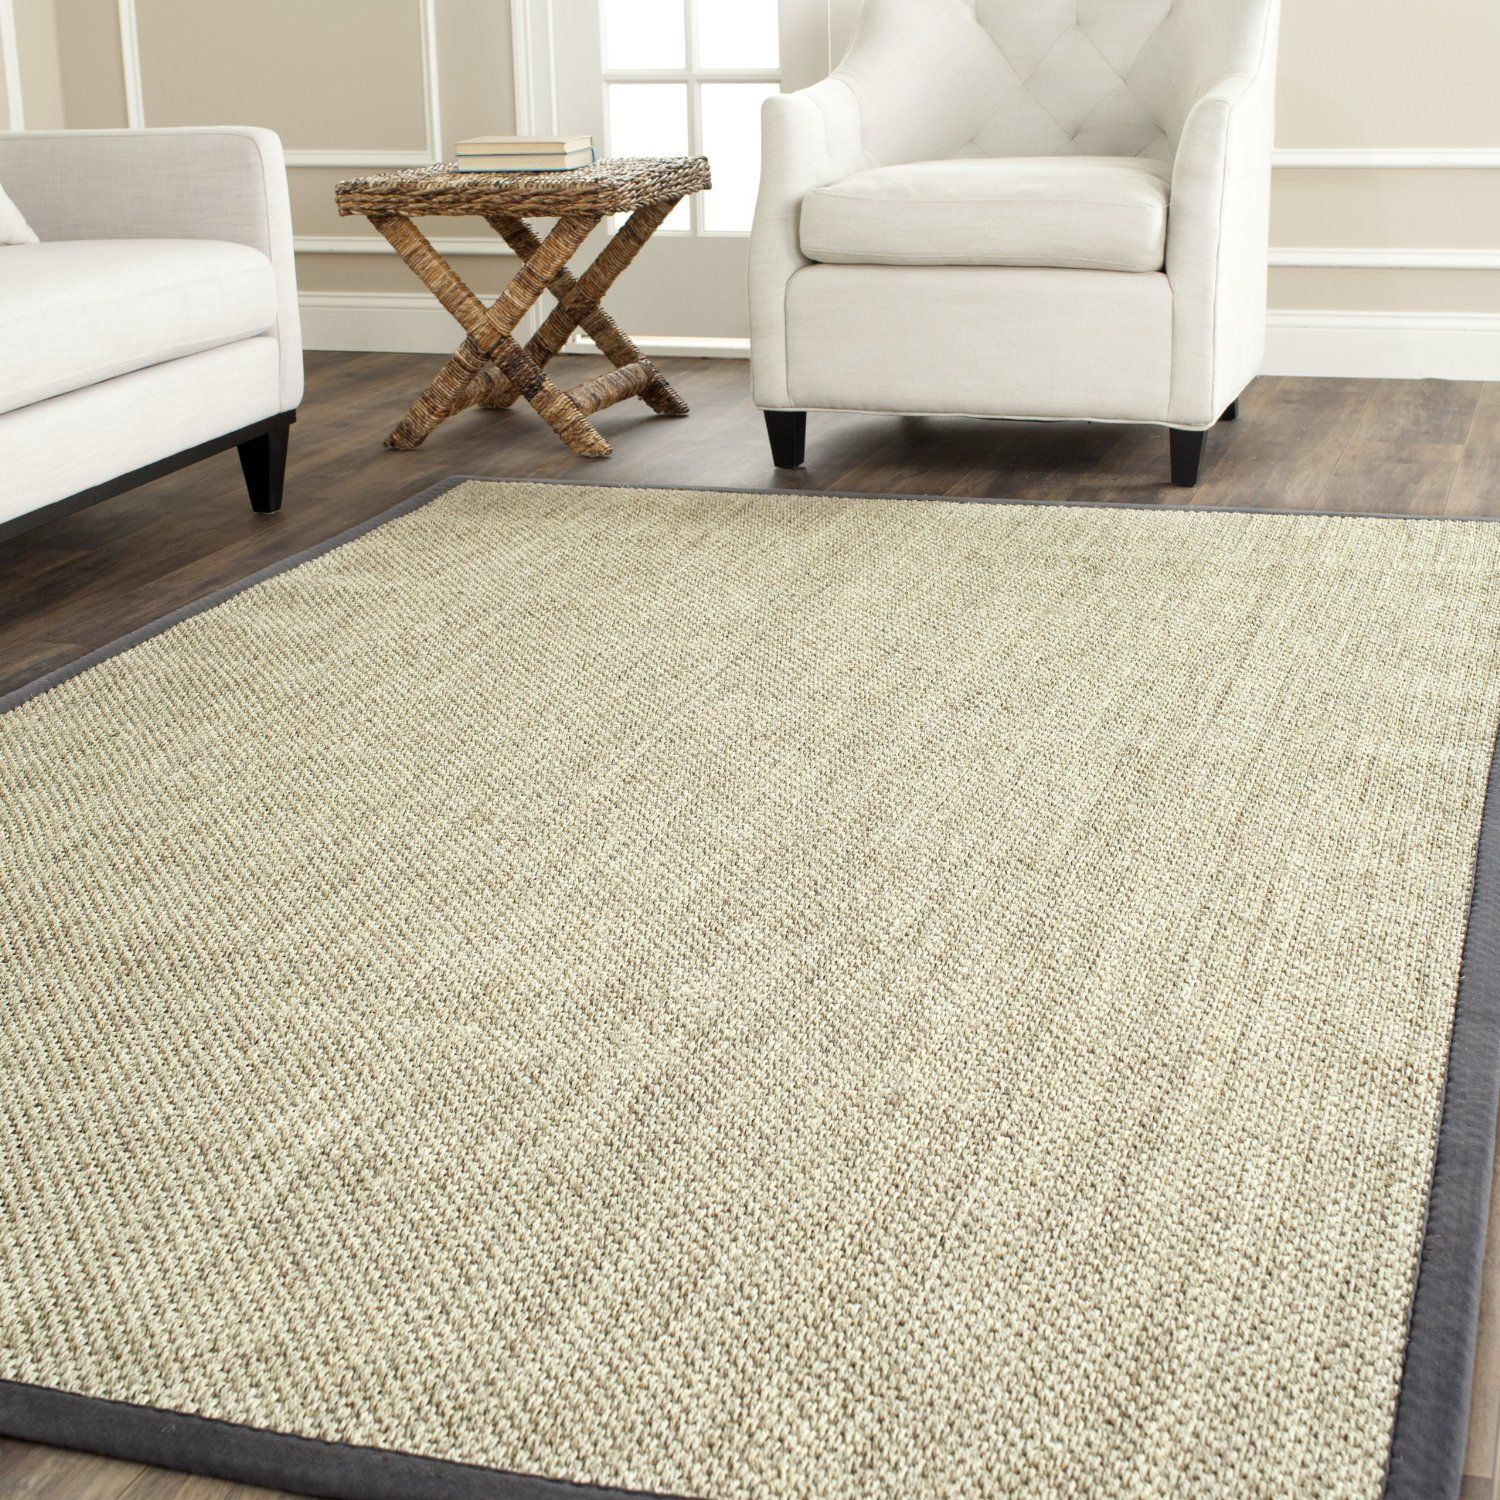 Modern Area Rugs For Living Room Modern Safavieh Nf443b 3 Natural Fiber Area Rug In Marble Grey